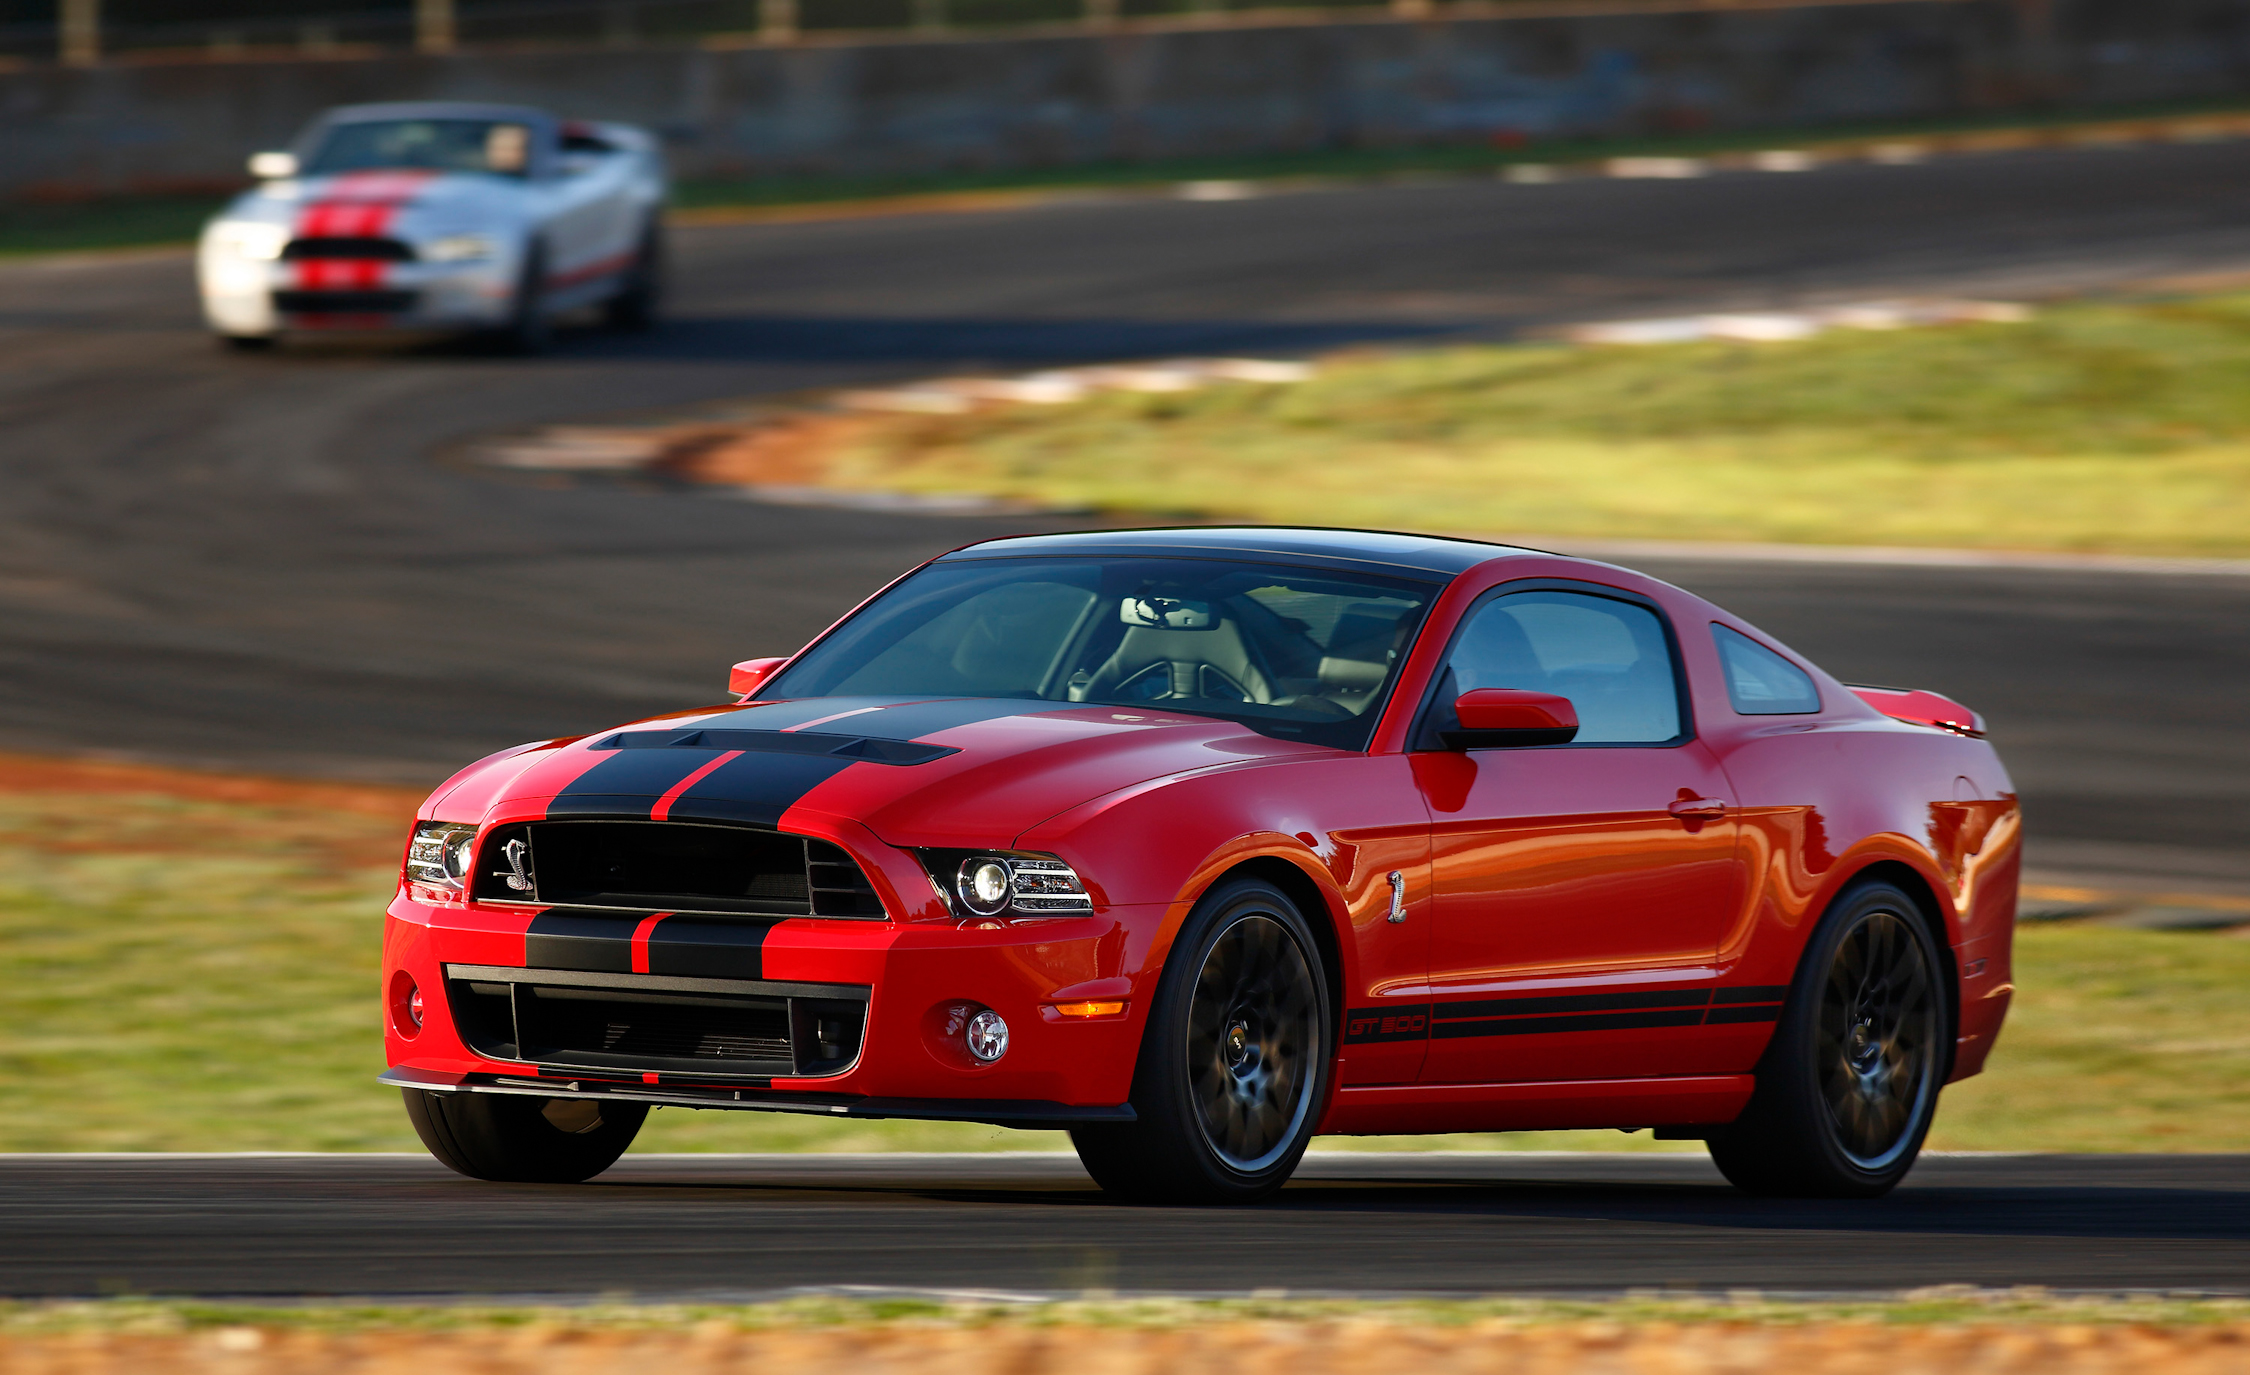 2013 Ford Mustang Shelby GT500 Red Test Drive Preview (Photo 37 of 47)